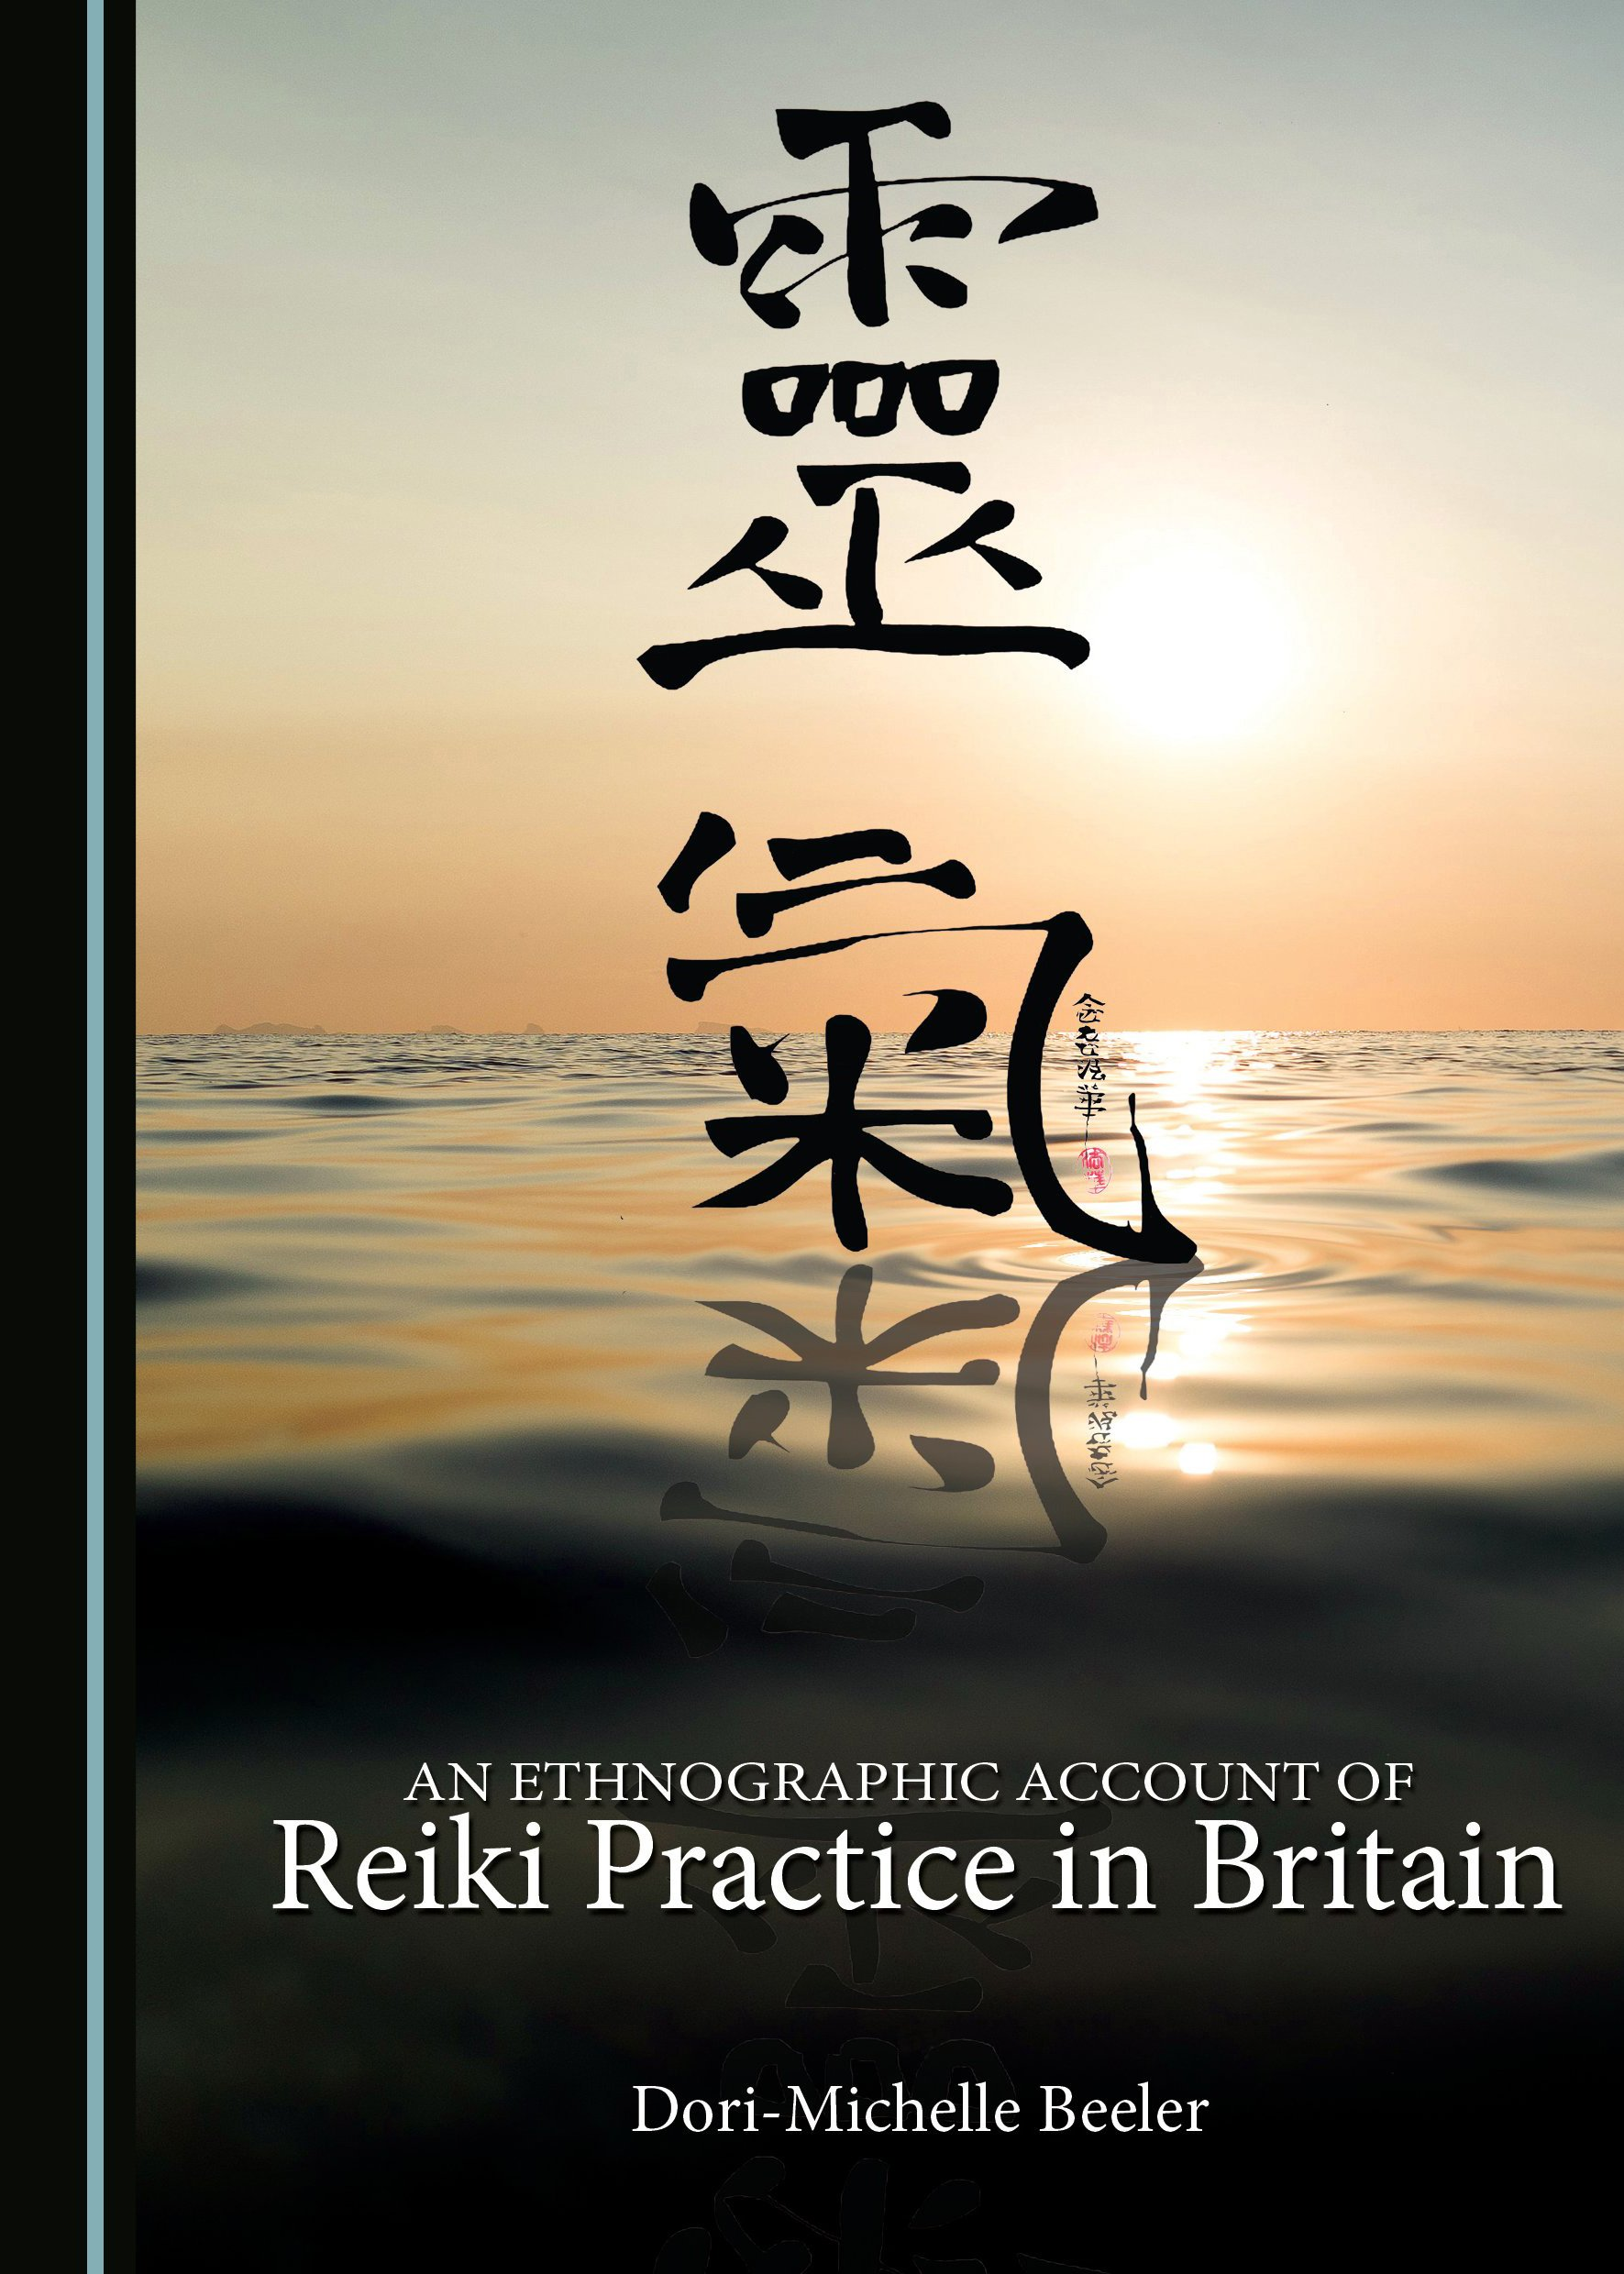 An Ethnographic Account of Reiki Practice in Britain